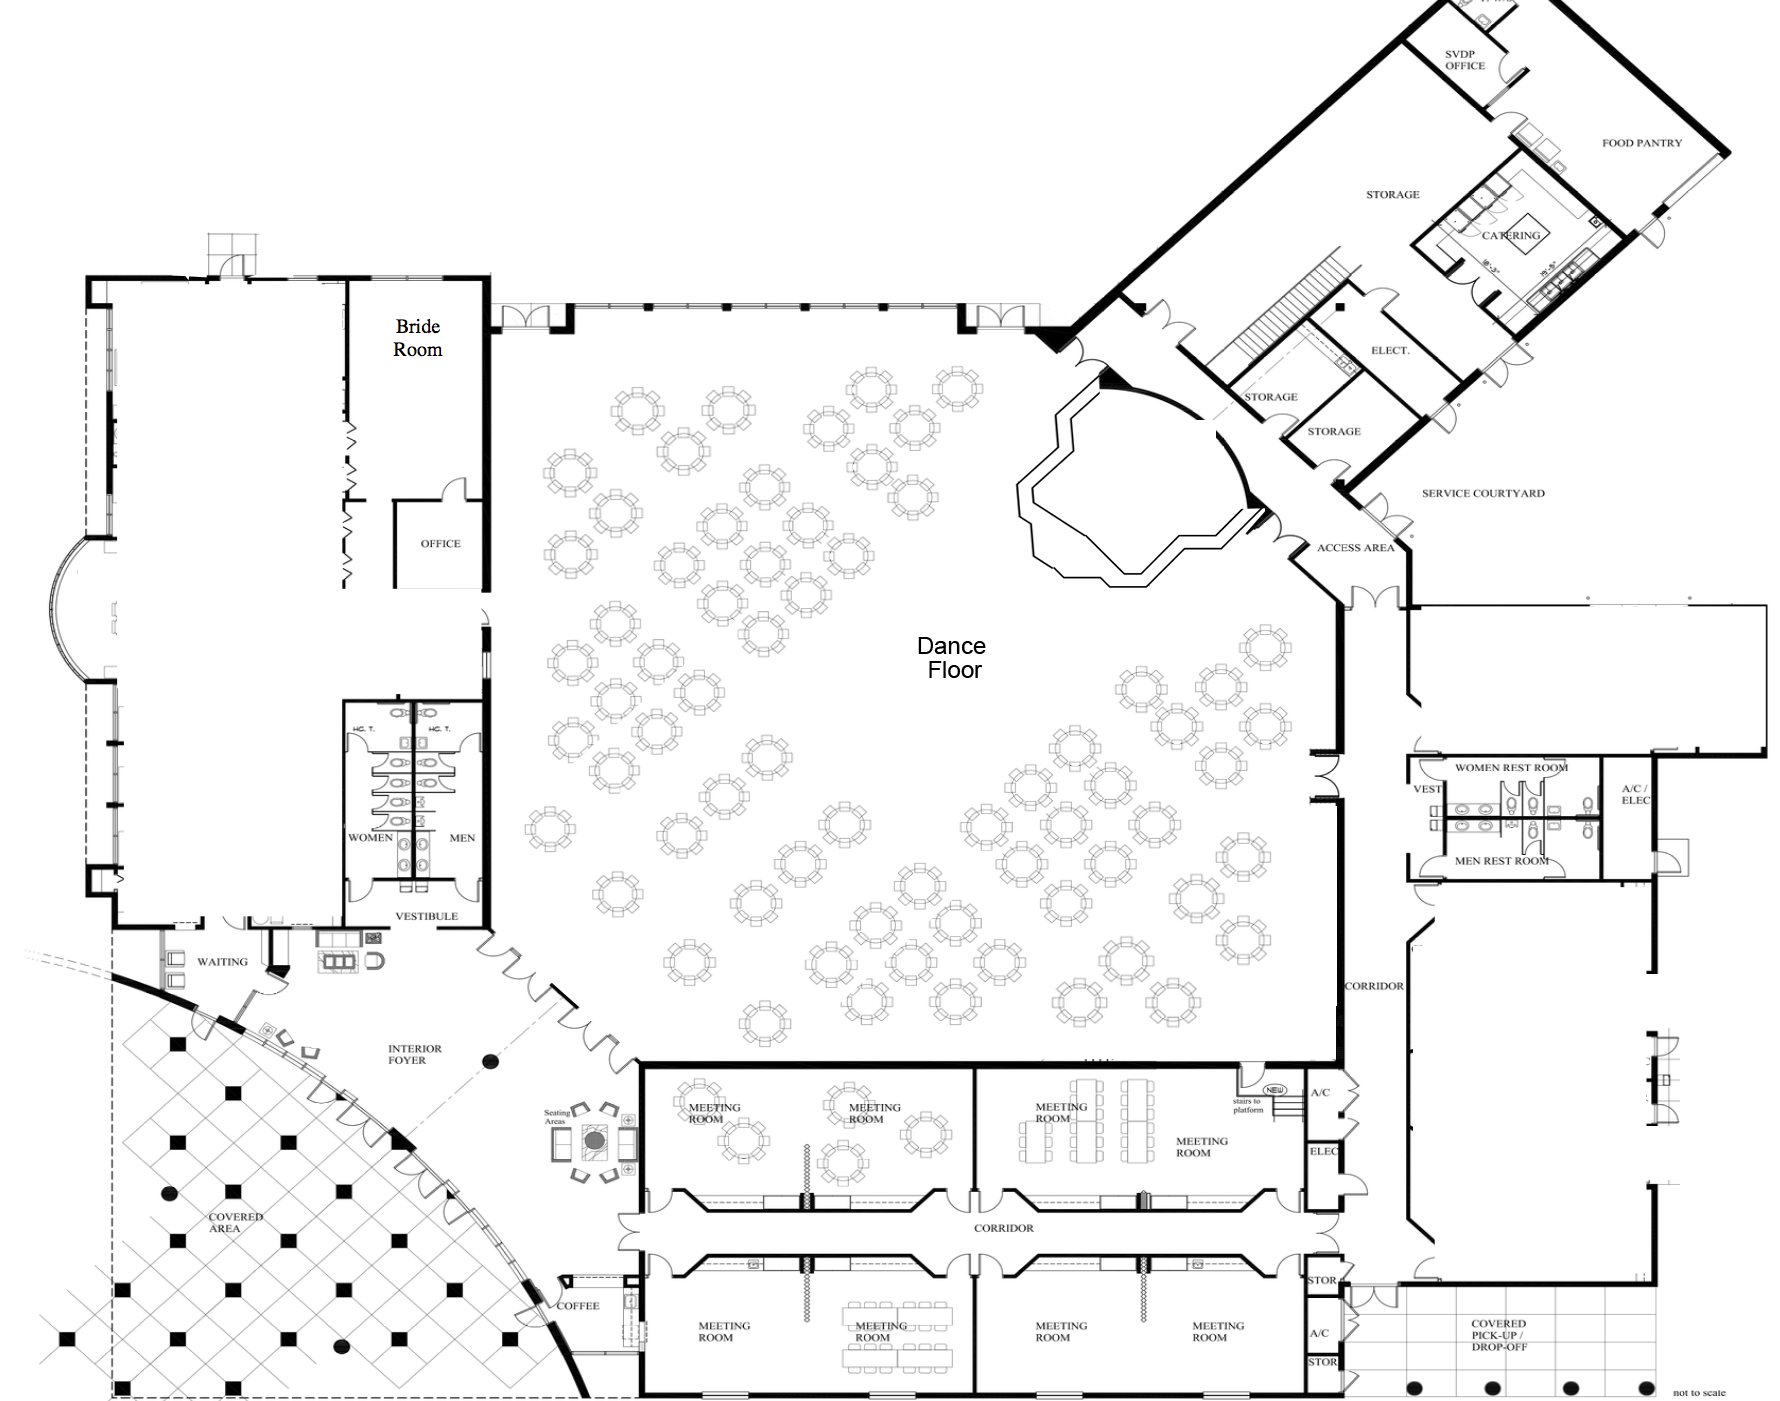 The venetian banquet hall floor plan gurus floor for 1000 venetian way floor plans